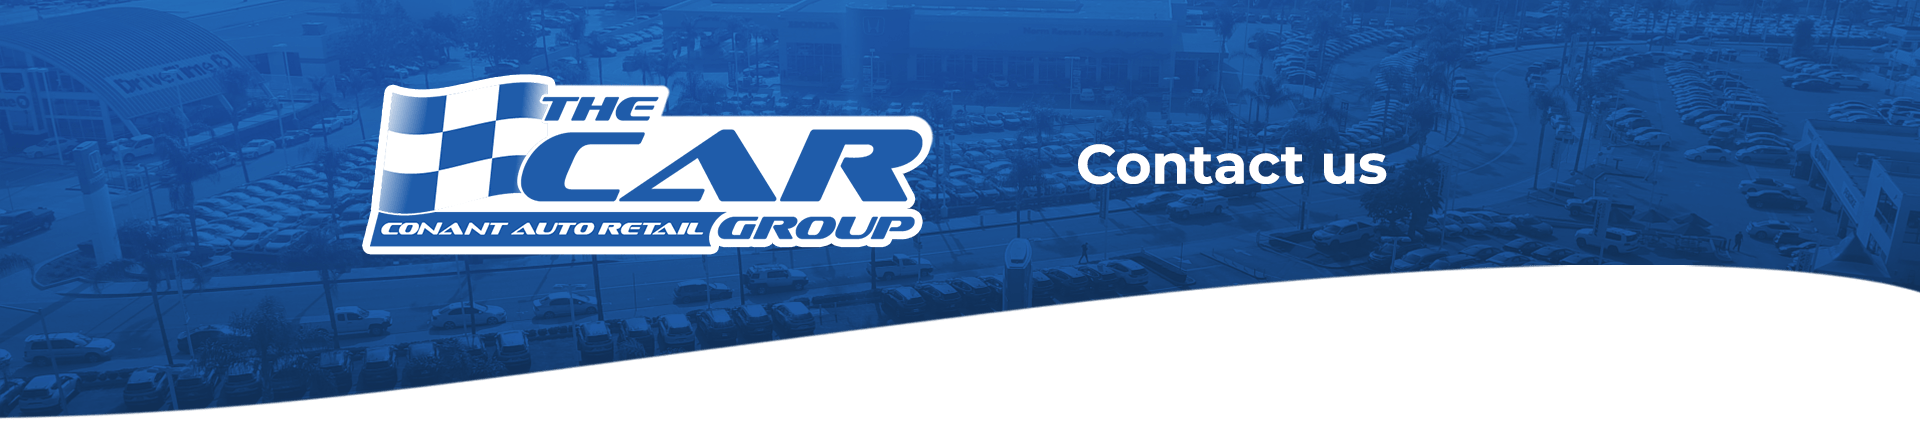 The Car Group Contact Us banner